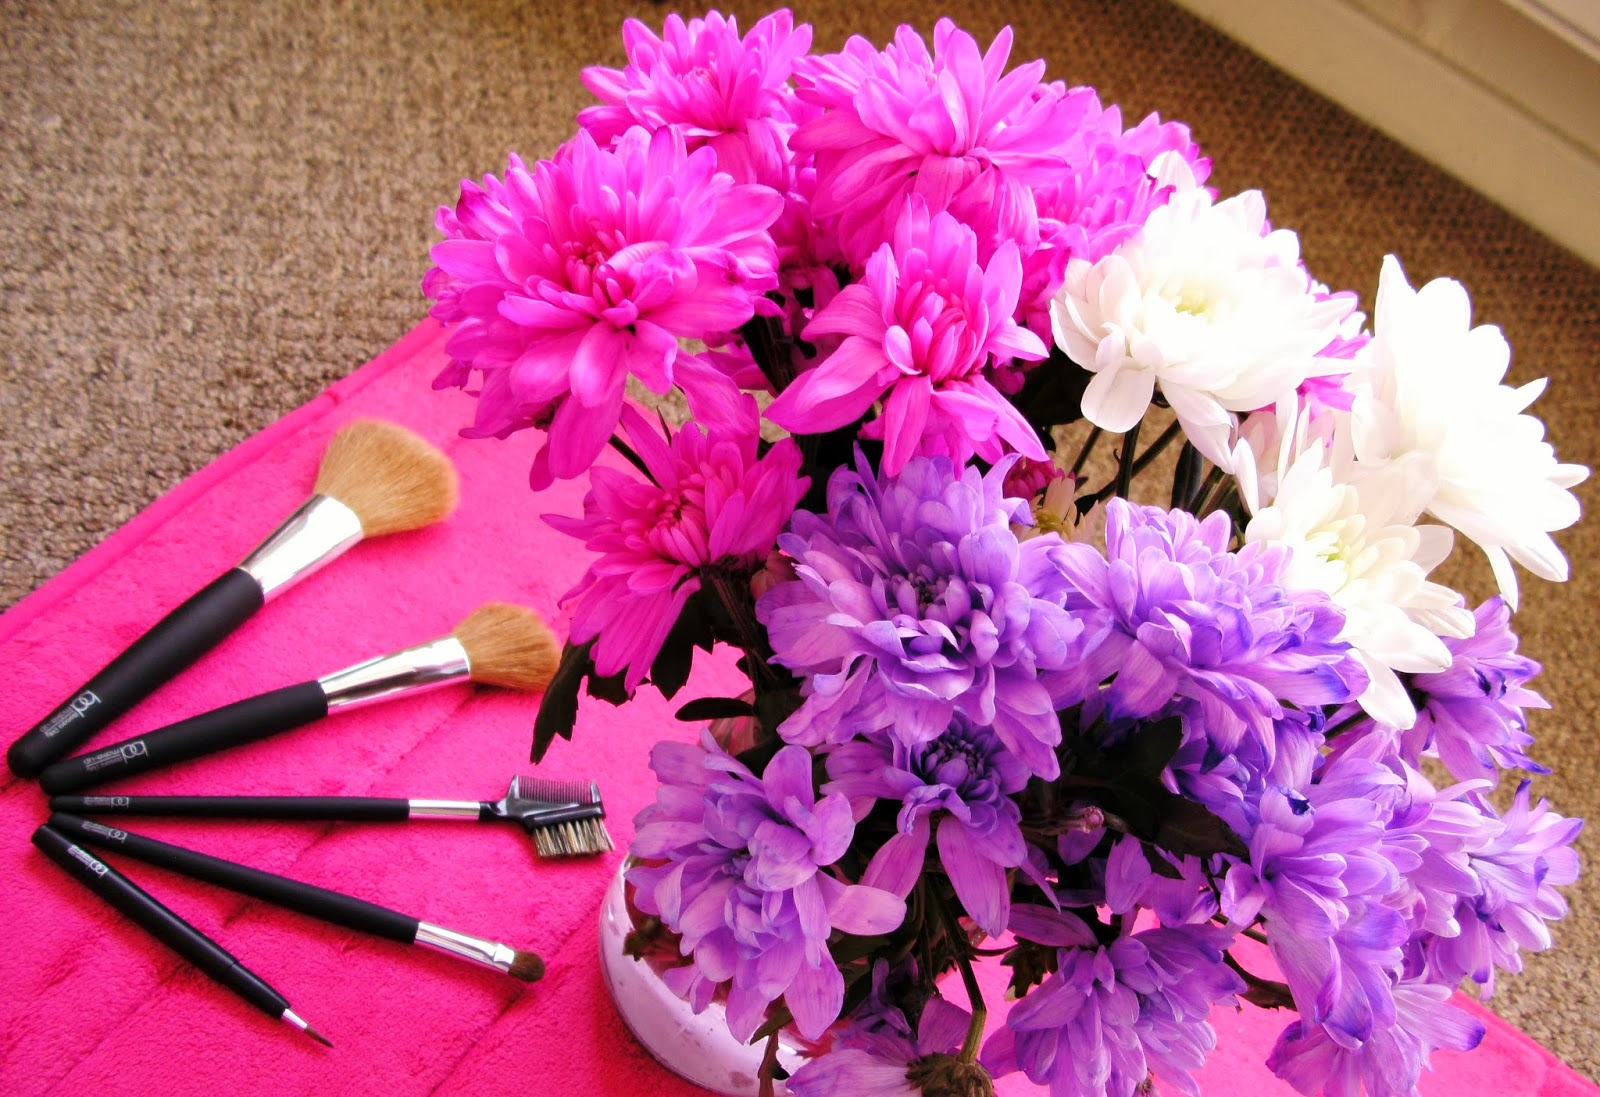 Barbara Daly Makeup Brushes from Tesco with flowers